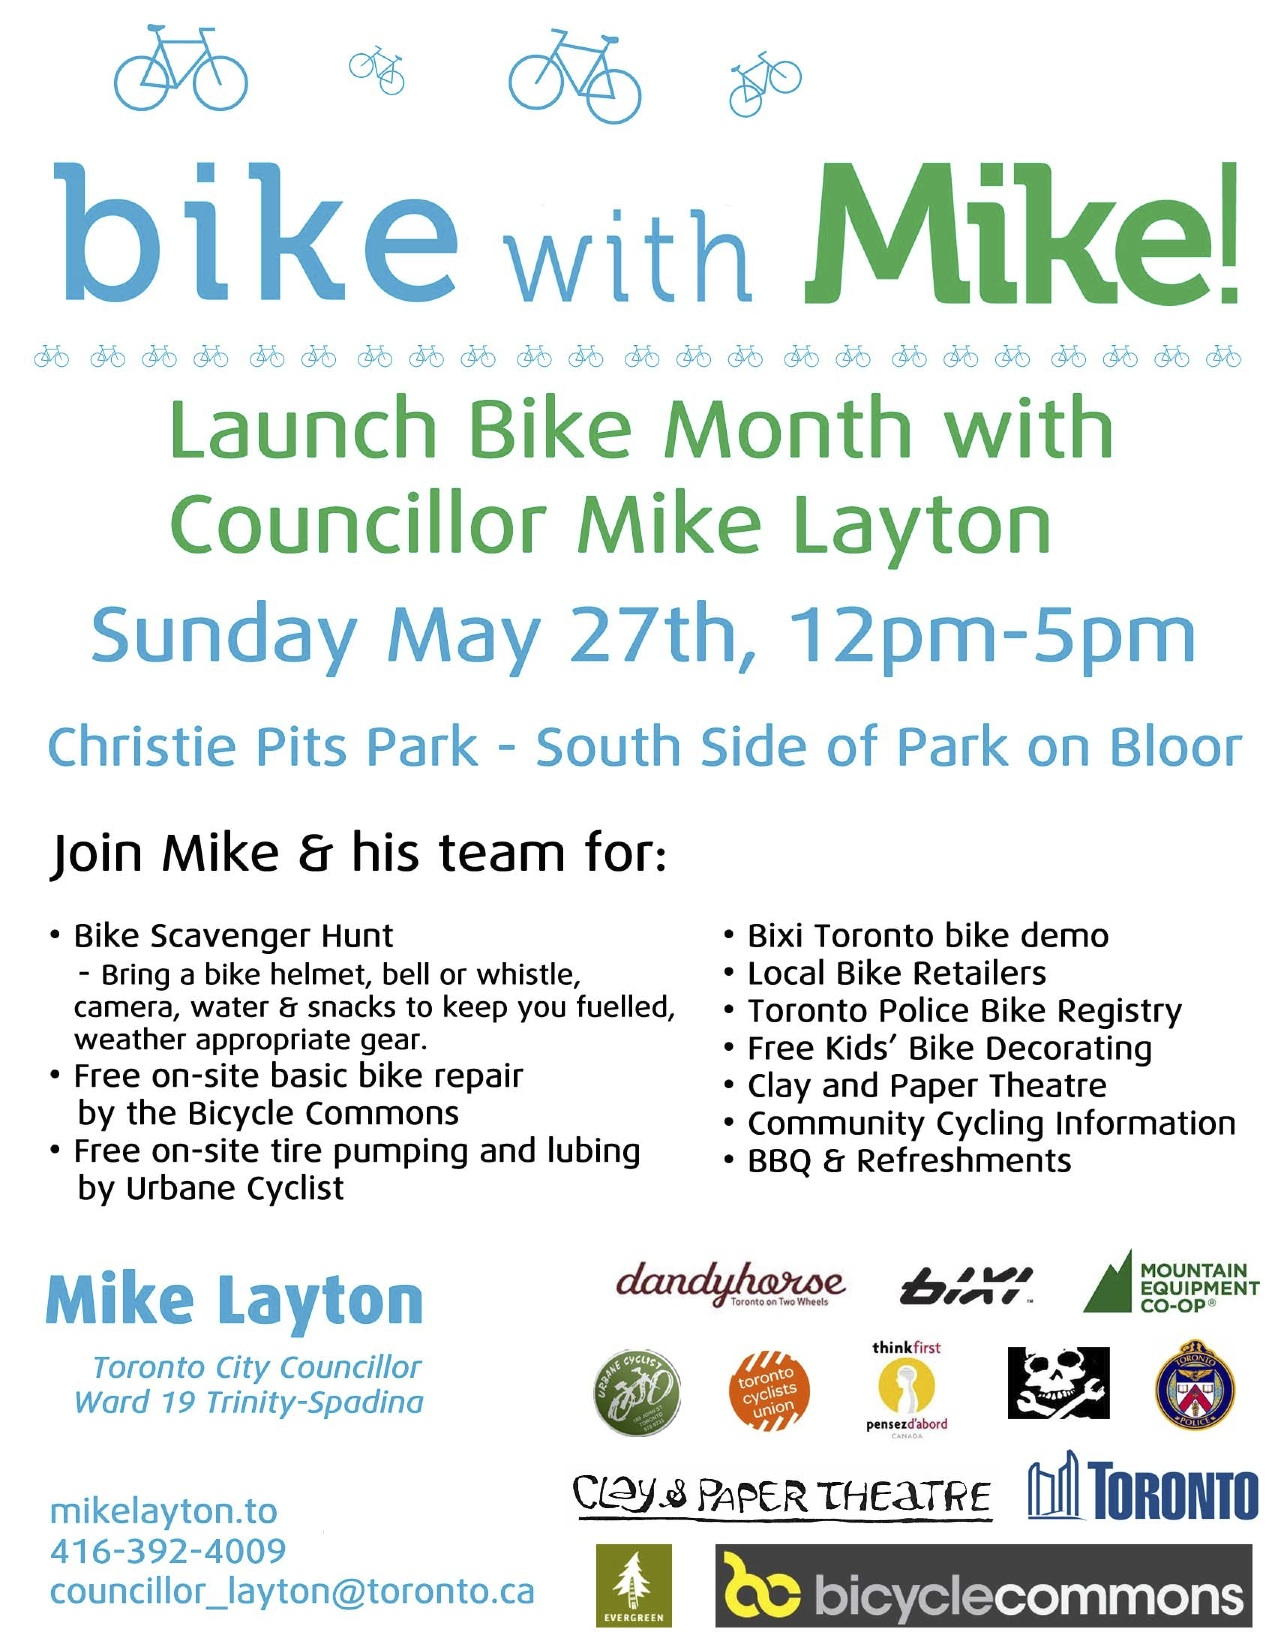 Bike With Mike Ward 19 Bike Month Scavenger Hunt With Councillor